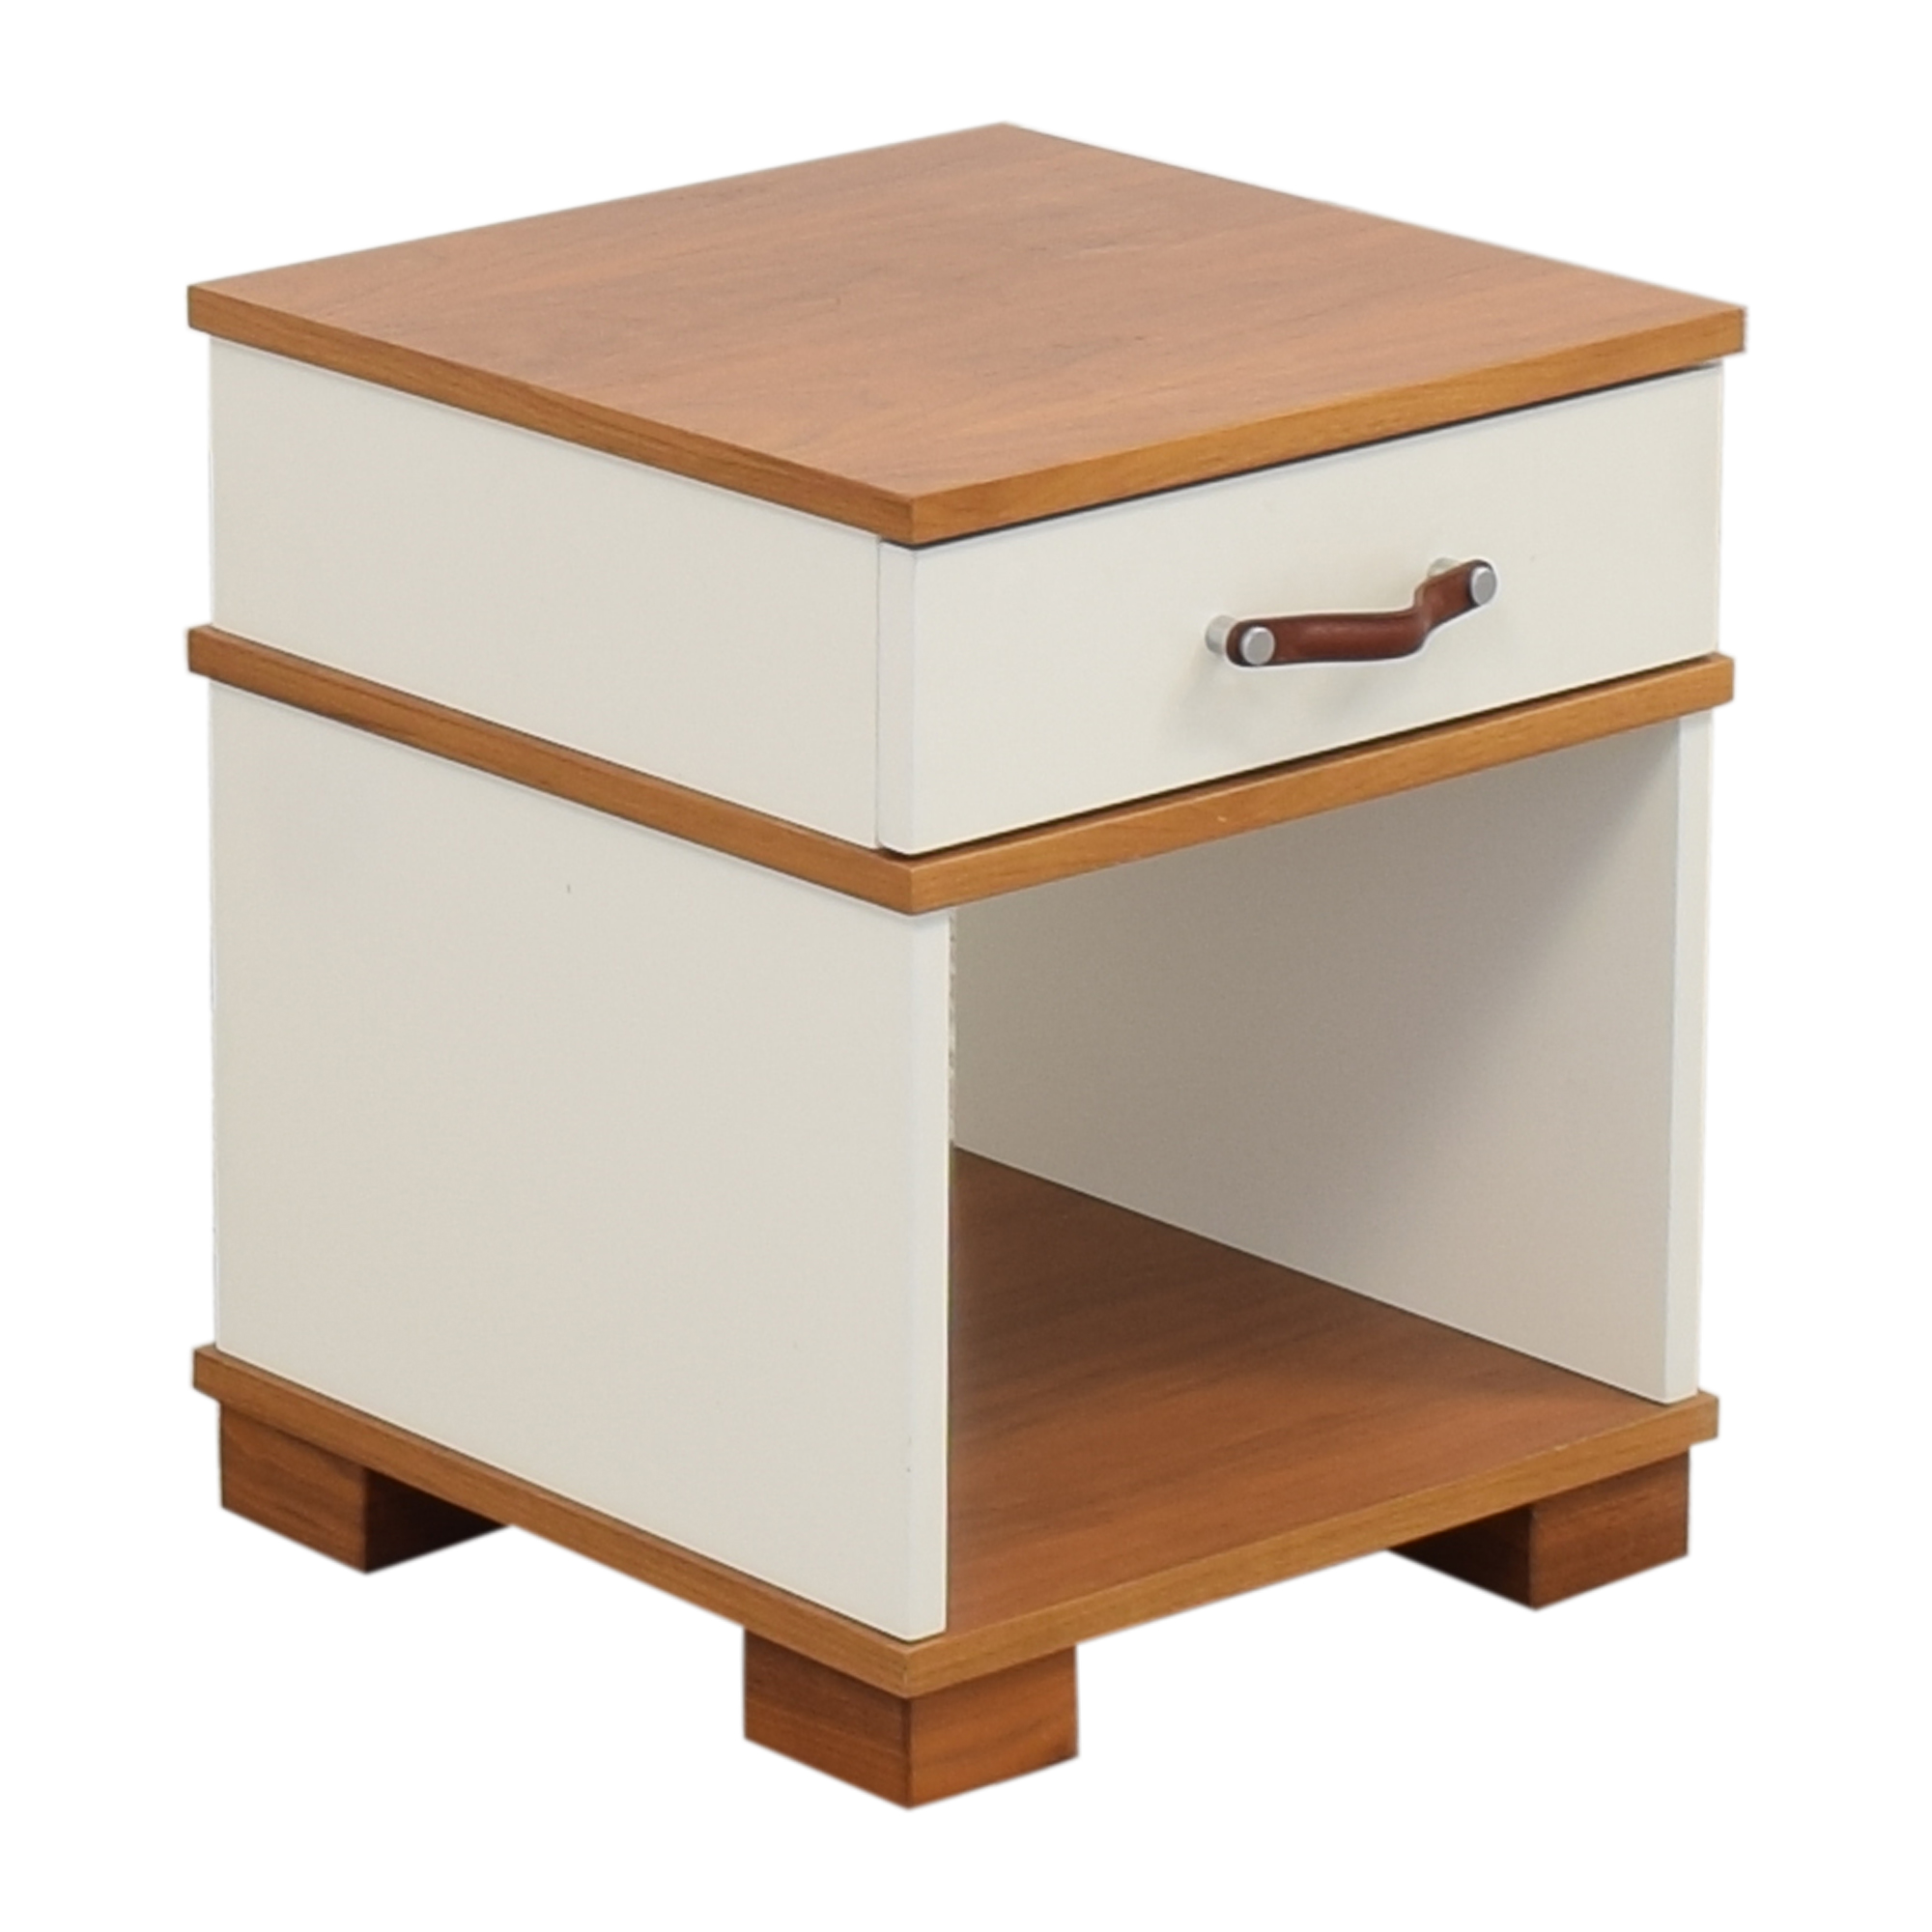 Ducduc Ducduc Morgan Nightstand dimensions